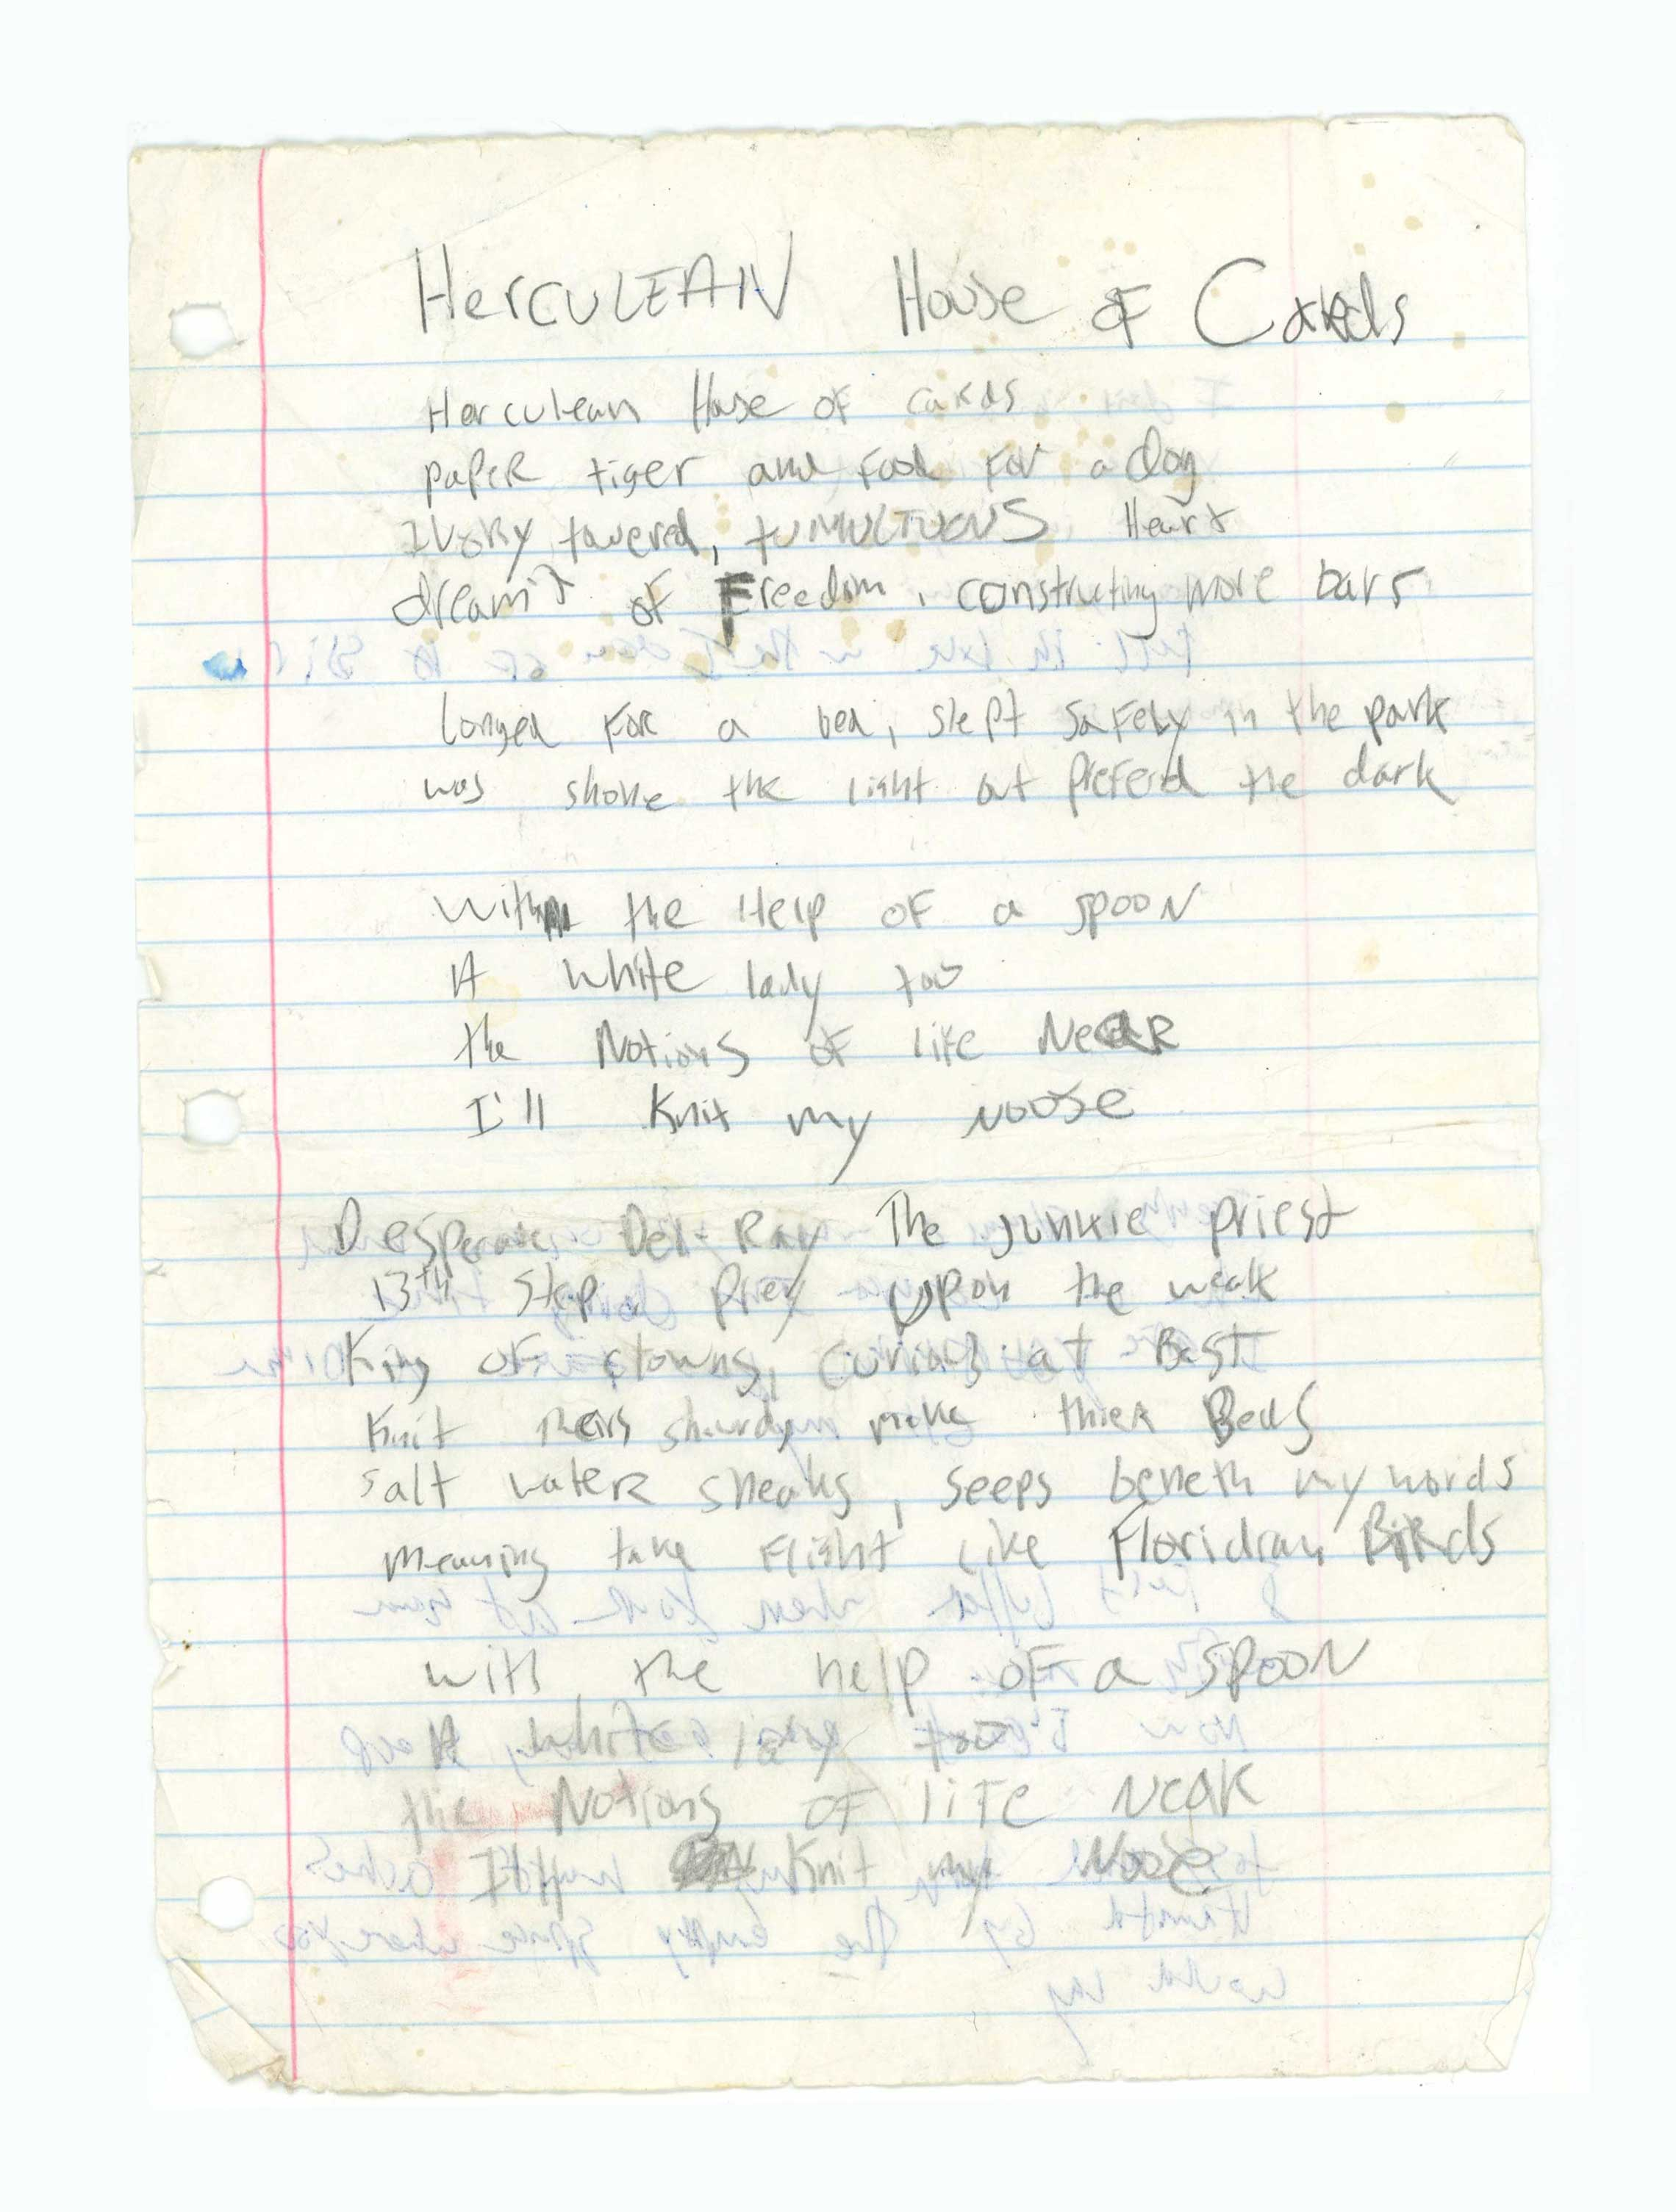 Trey's lyrics for an early version of his song  Herculean House of Cards